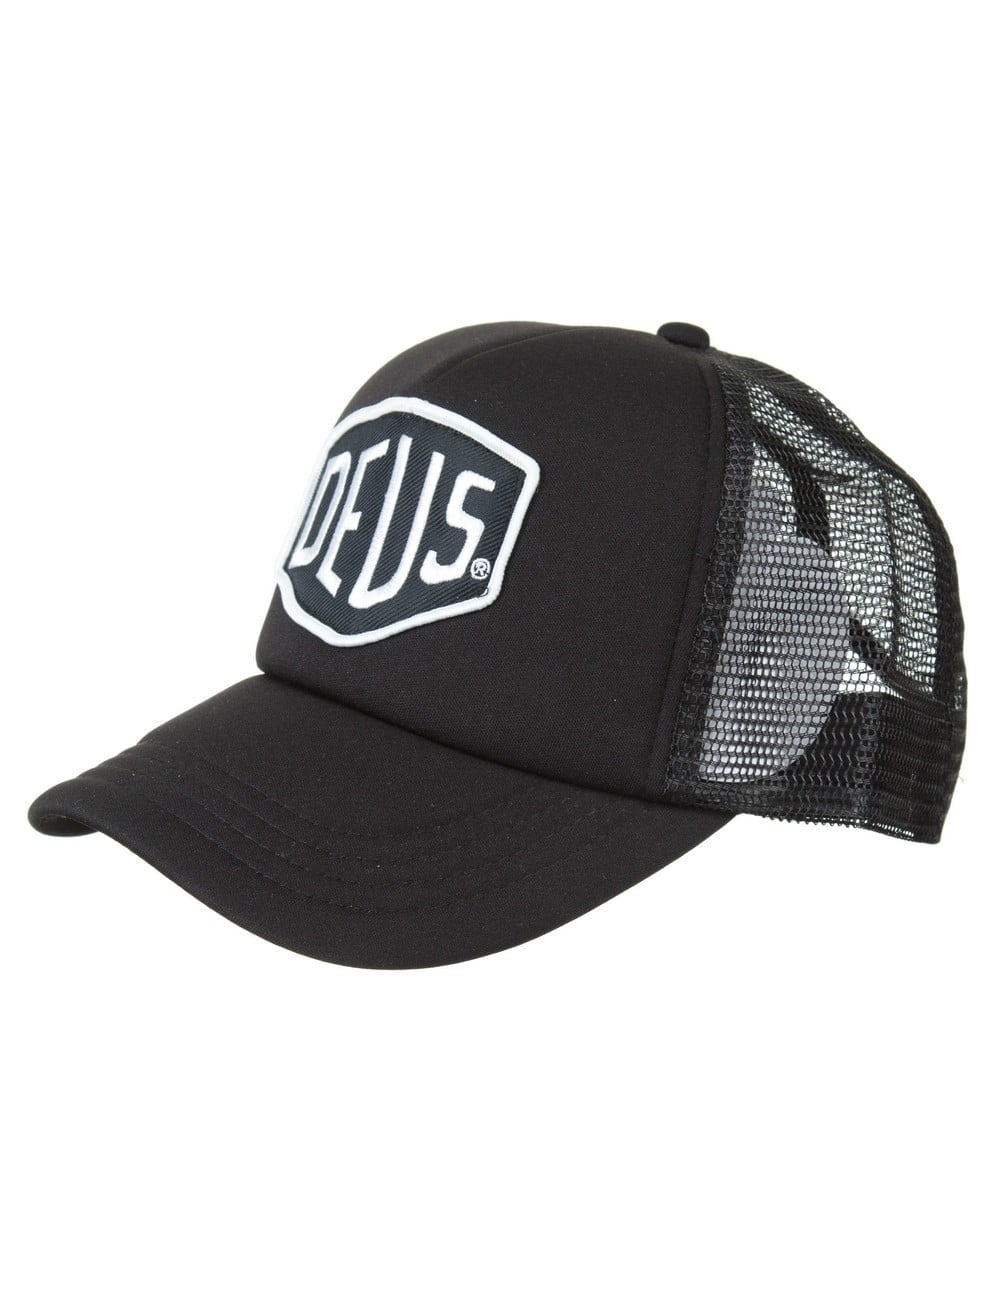 0fcc1d2a47b37 Deus Ex Machina Baylands Trucker Hat - Black White - Hat Shop from ...